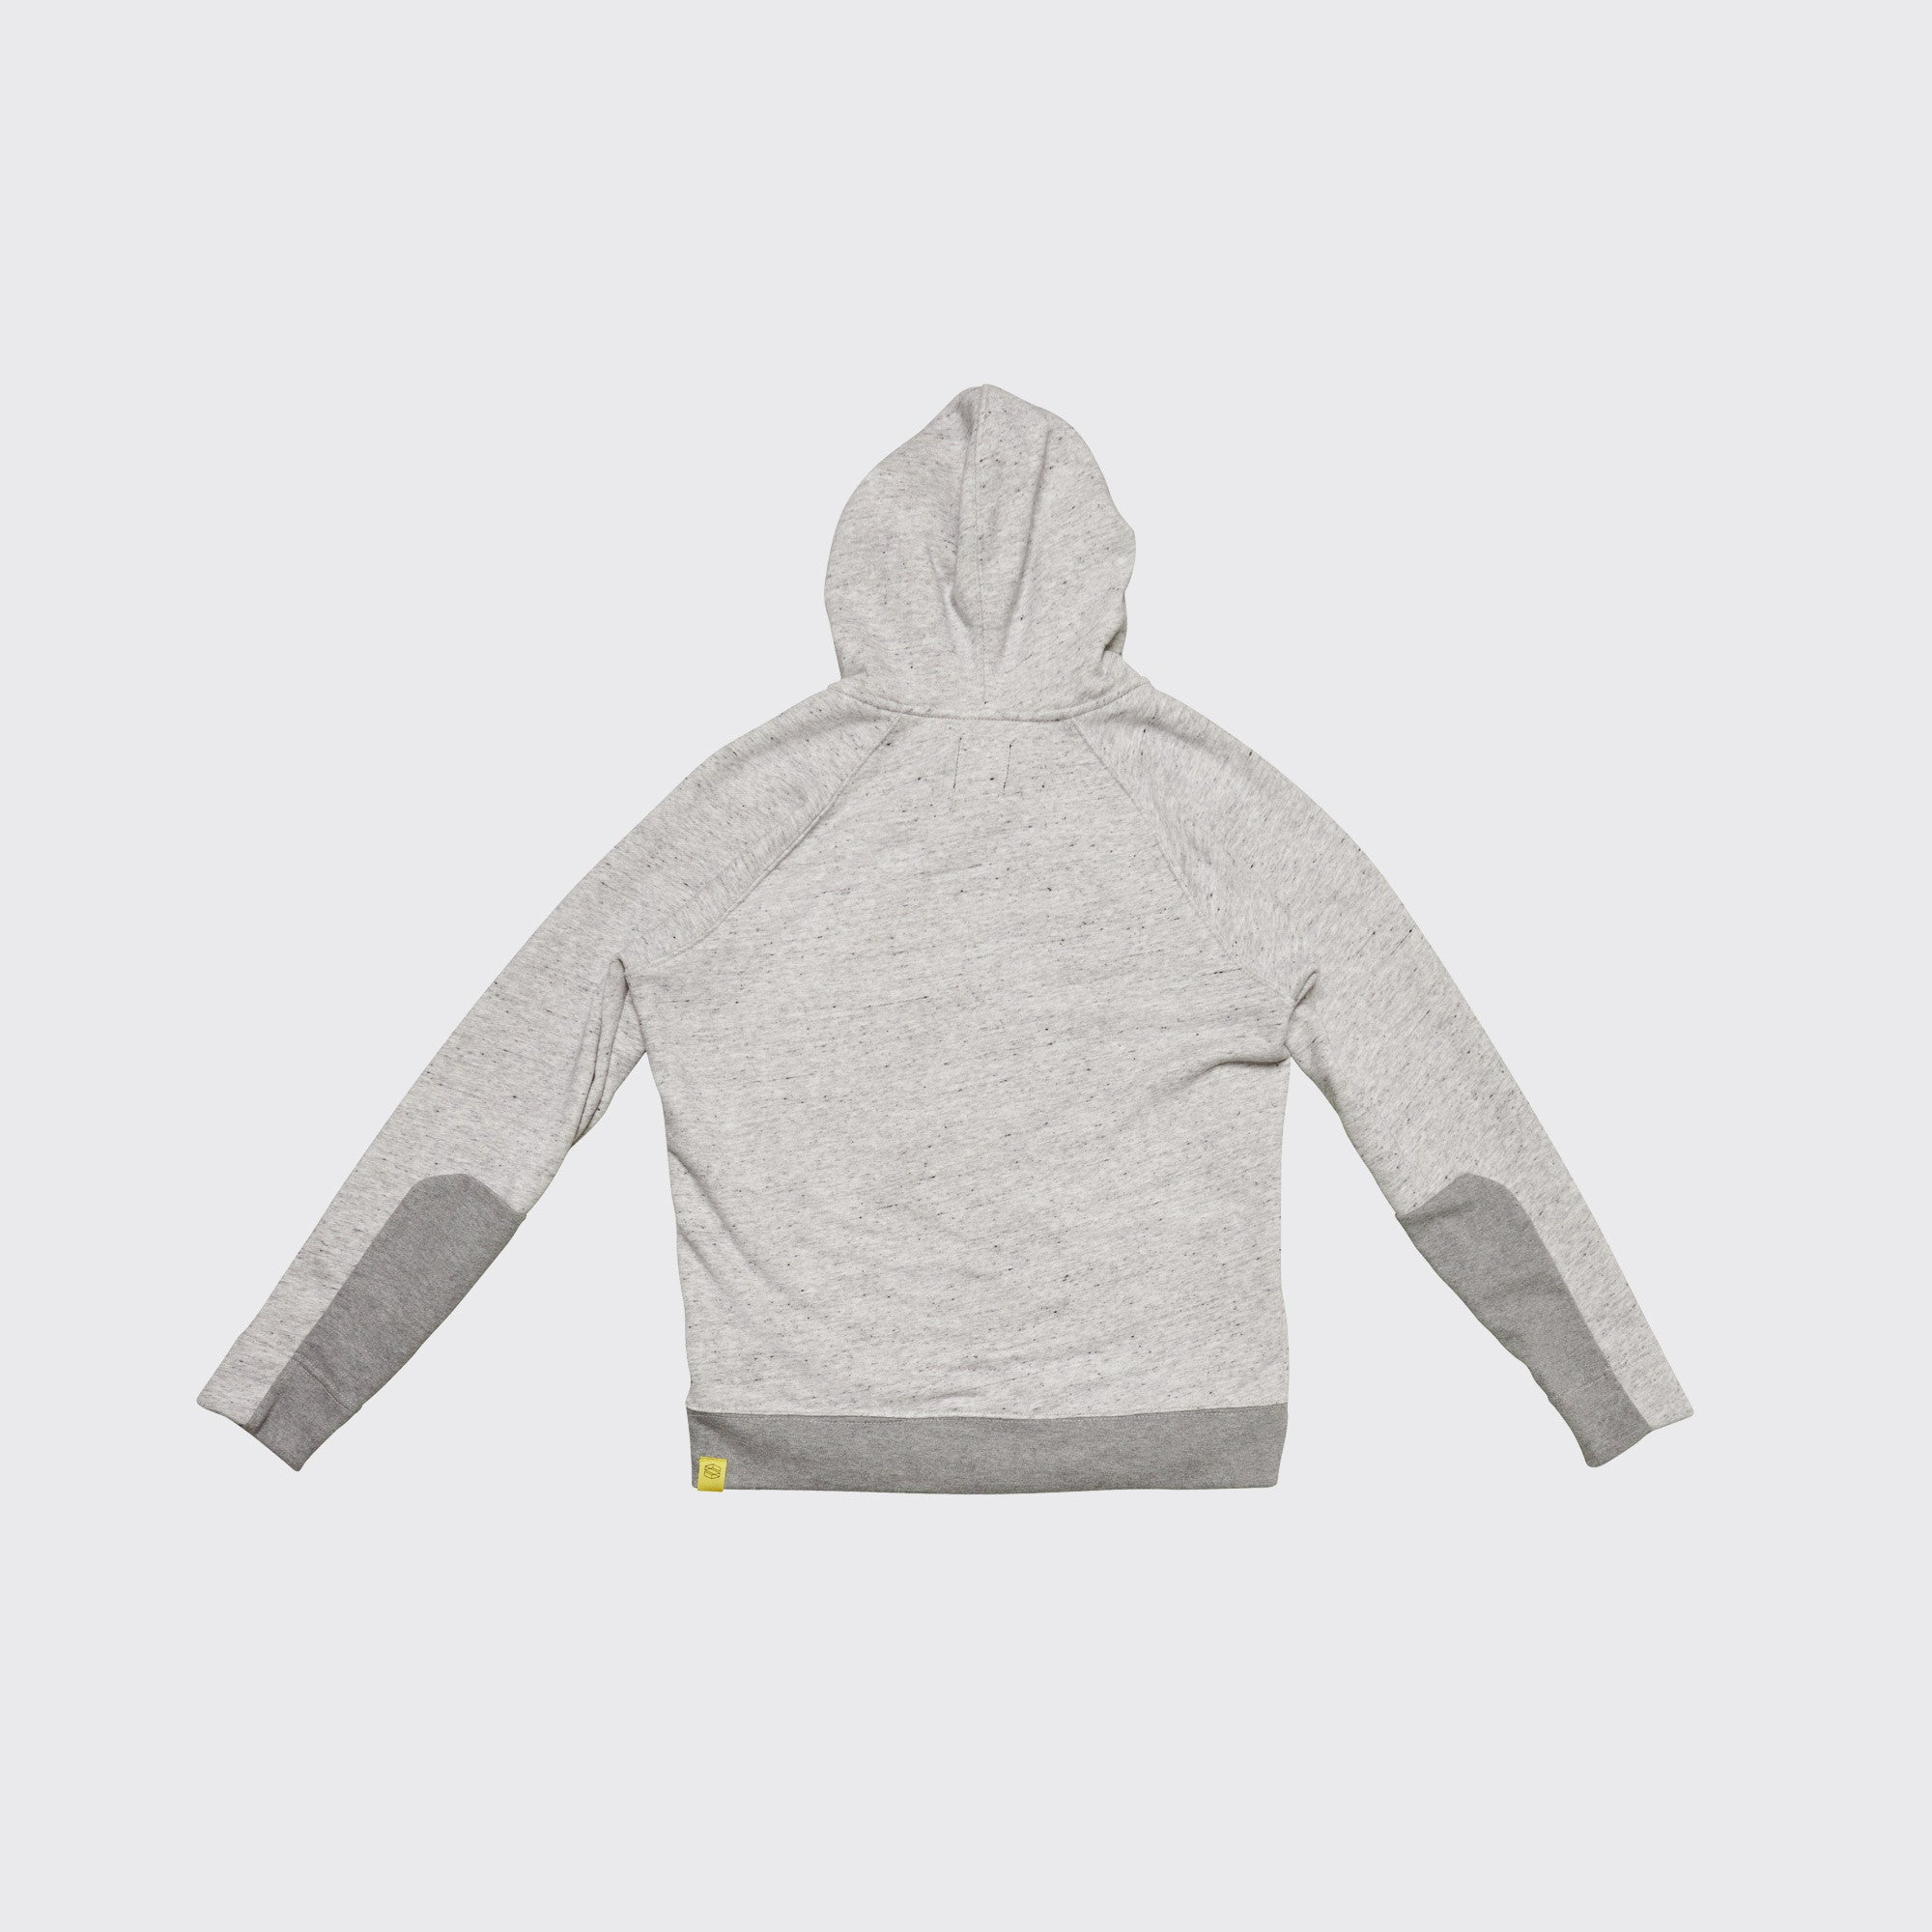 AIRSTREAM ZIP HOODIE - Salt & Pepper Terry